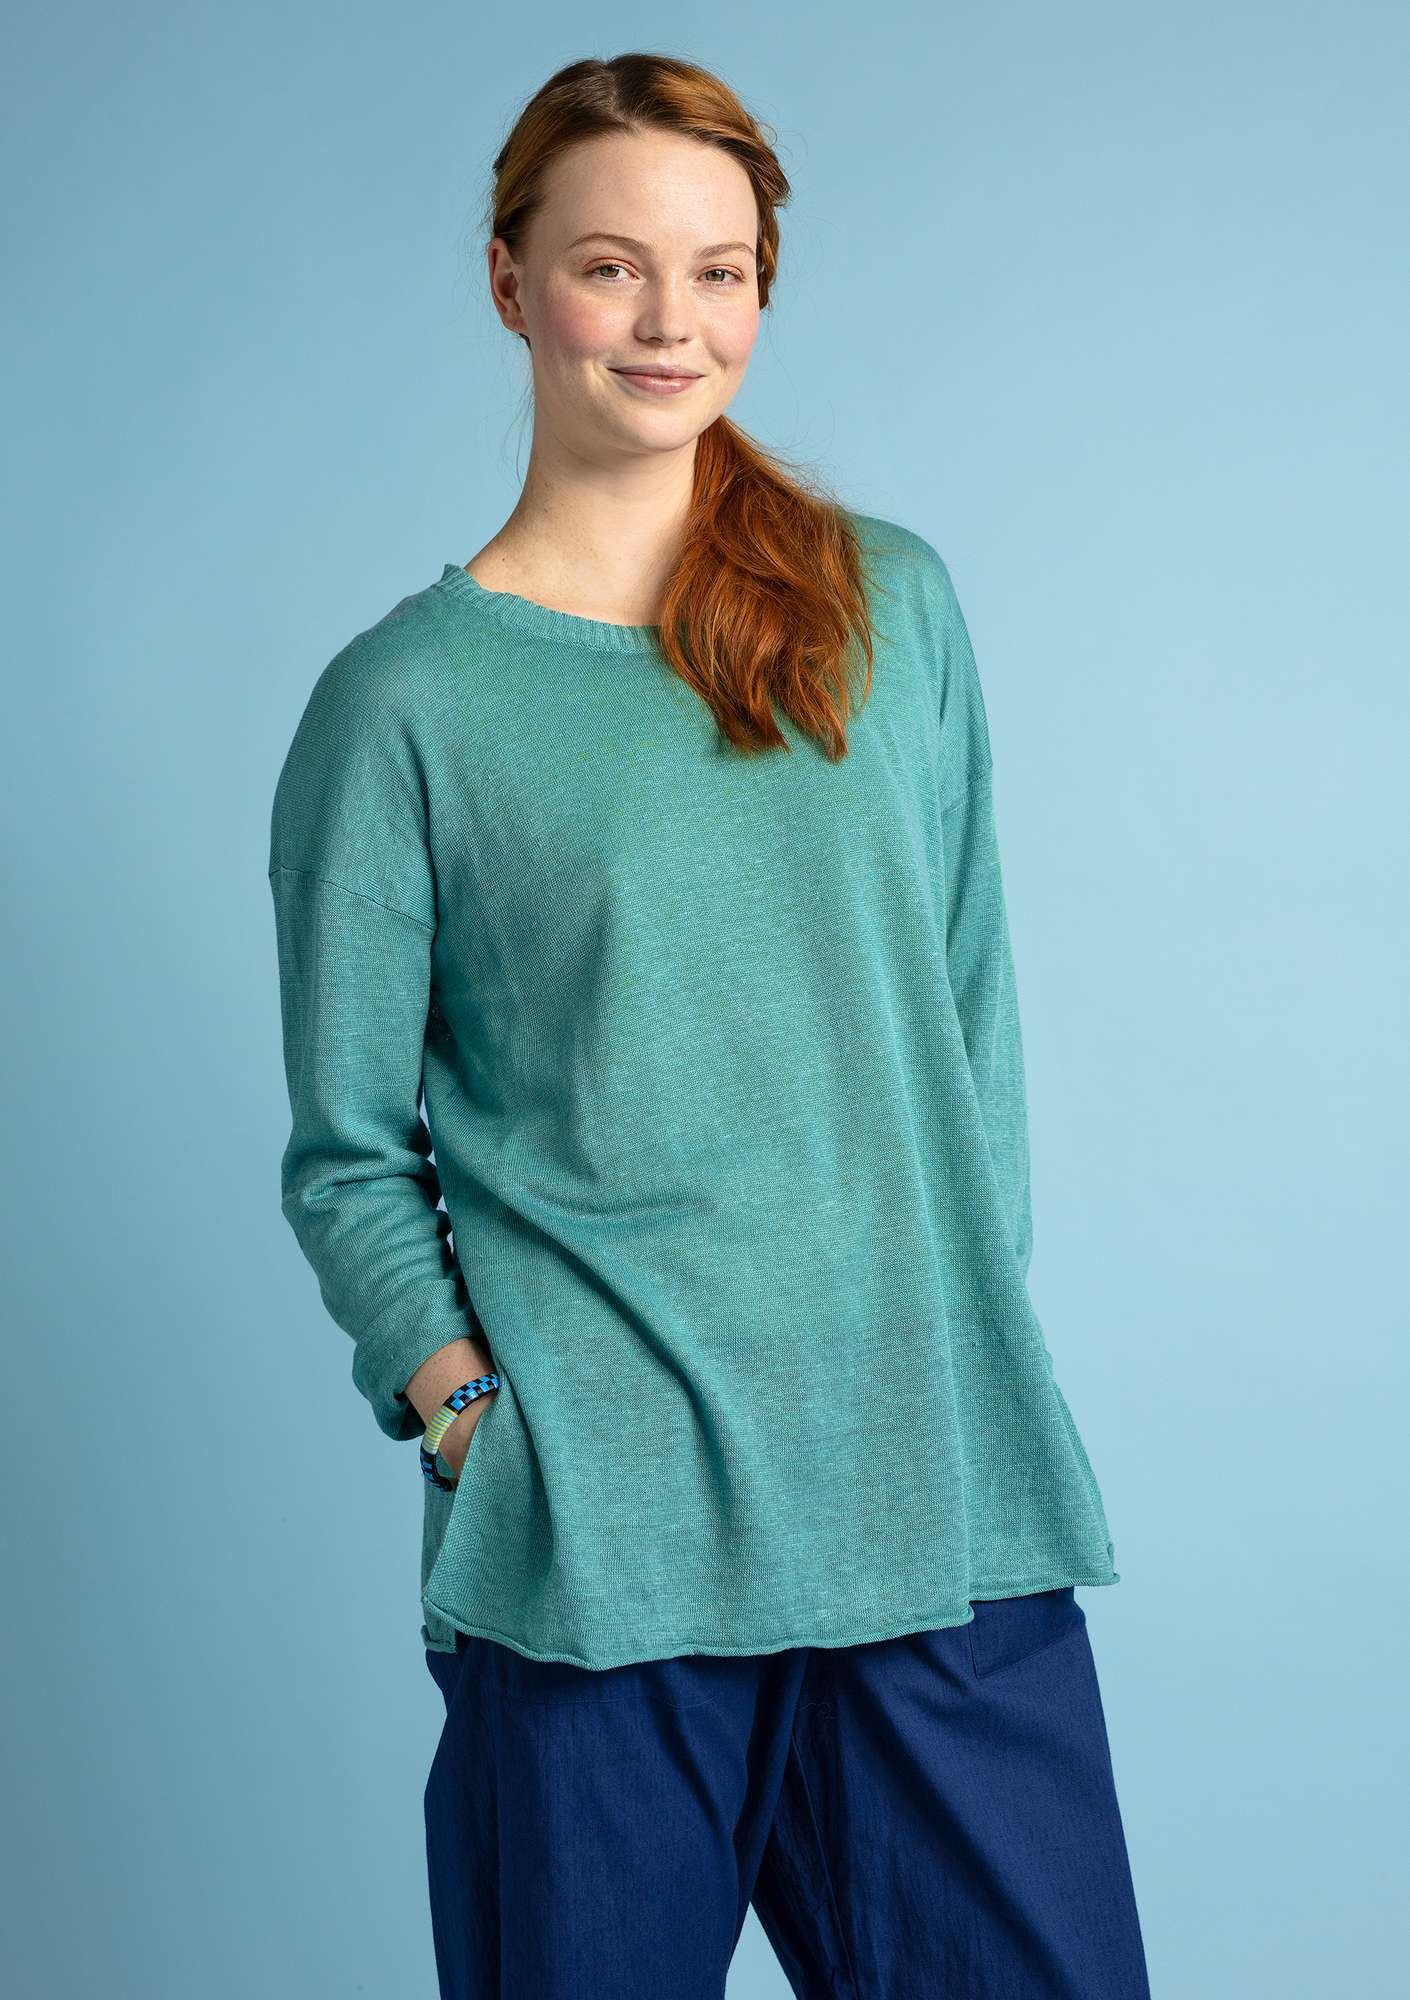 Knit tunic in organic linen jade